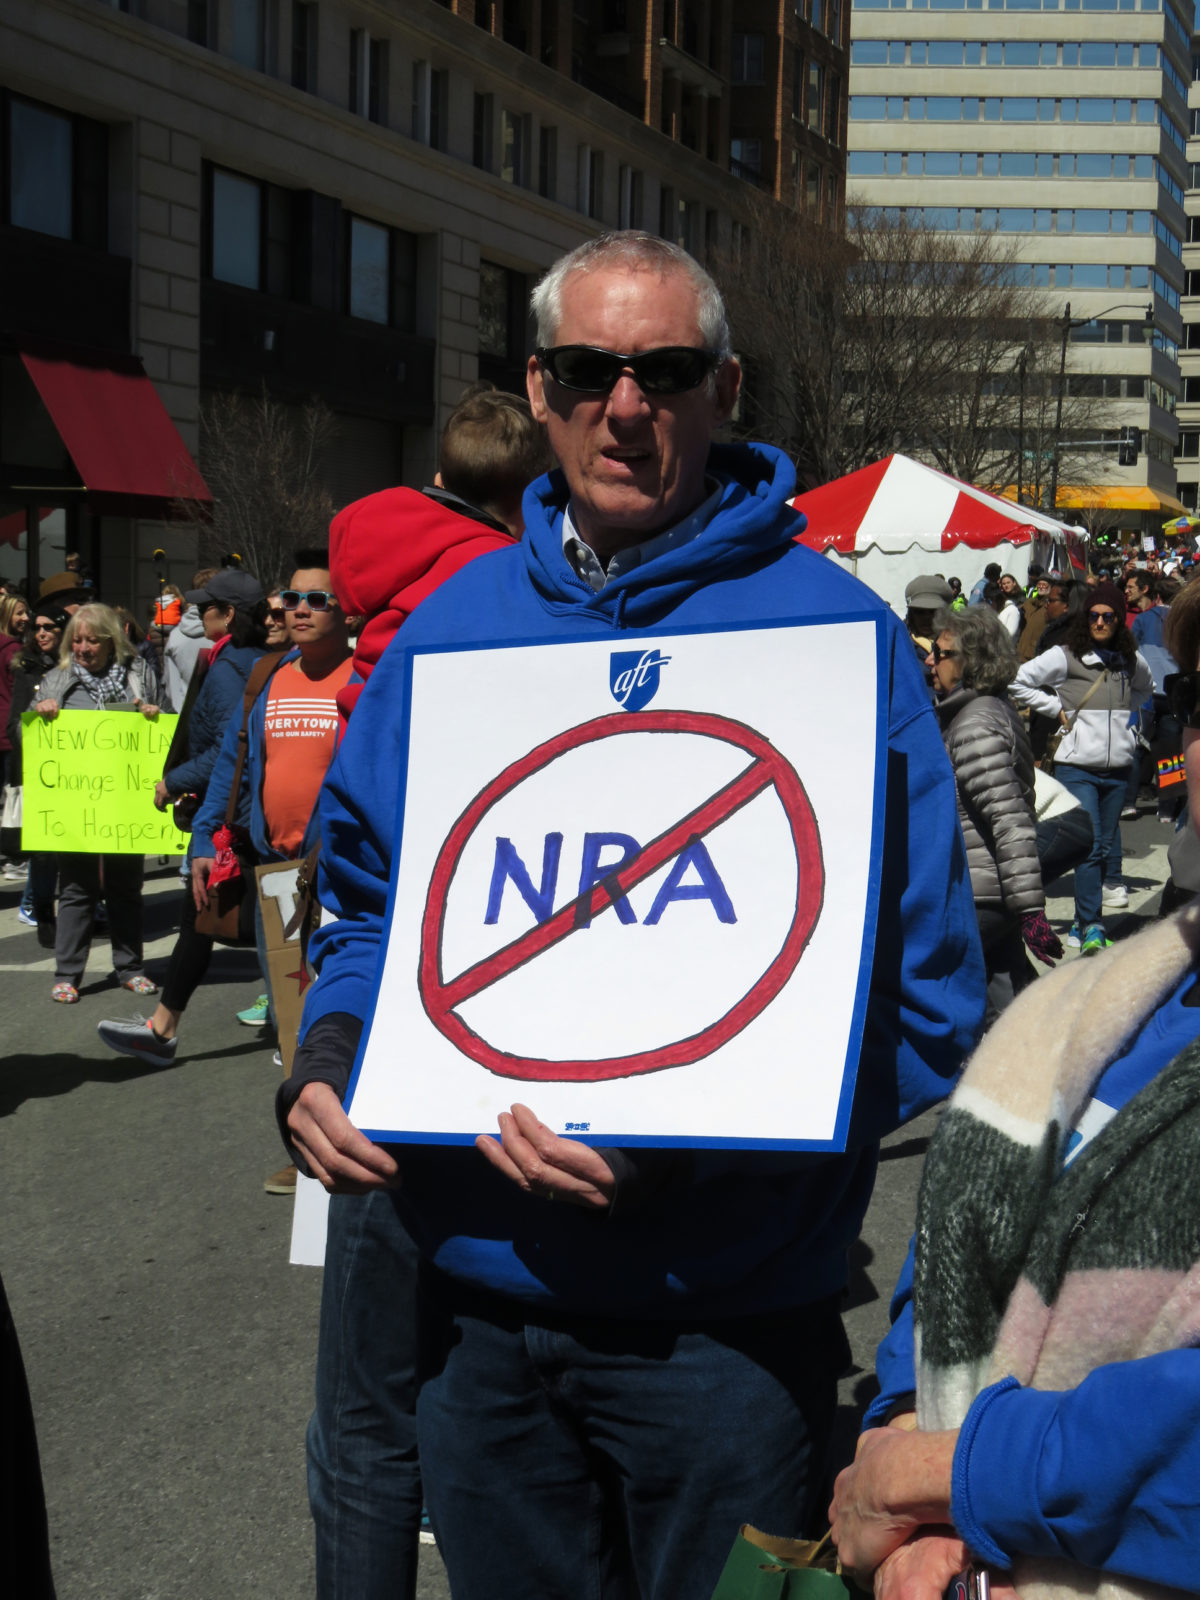 A man holds up an anti-NRA sign at a March For Our Lives rally in 2018. © Richard Gunion | Dreamstime.com